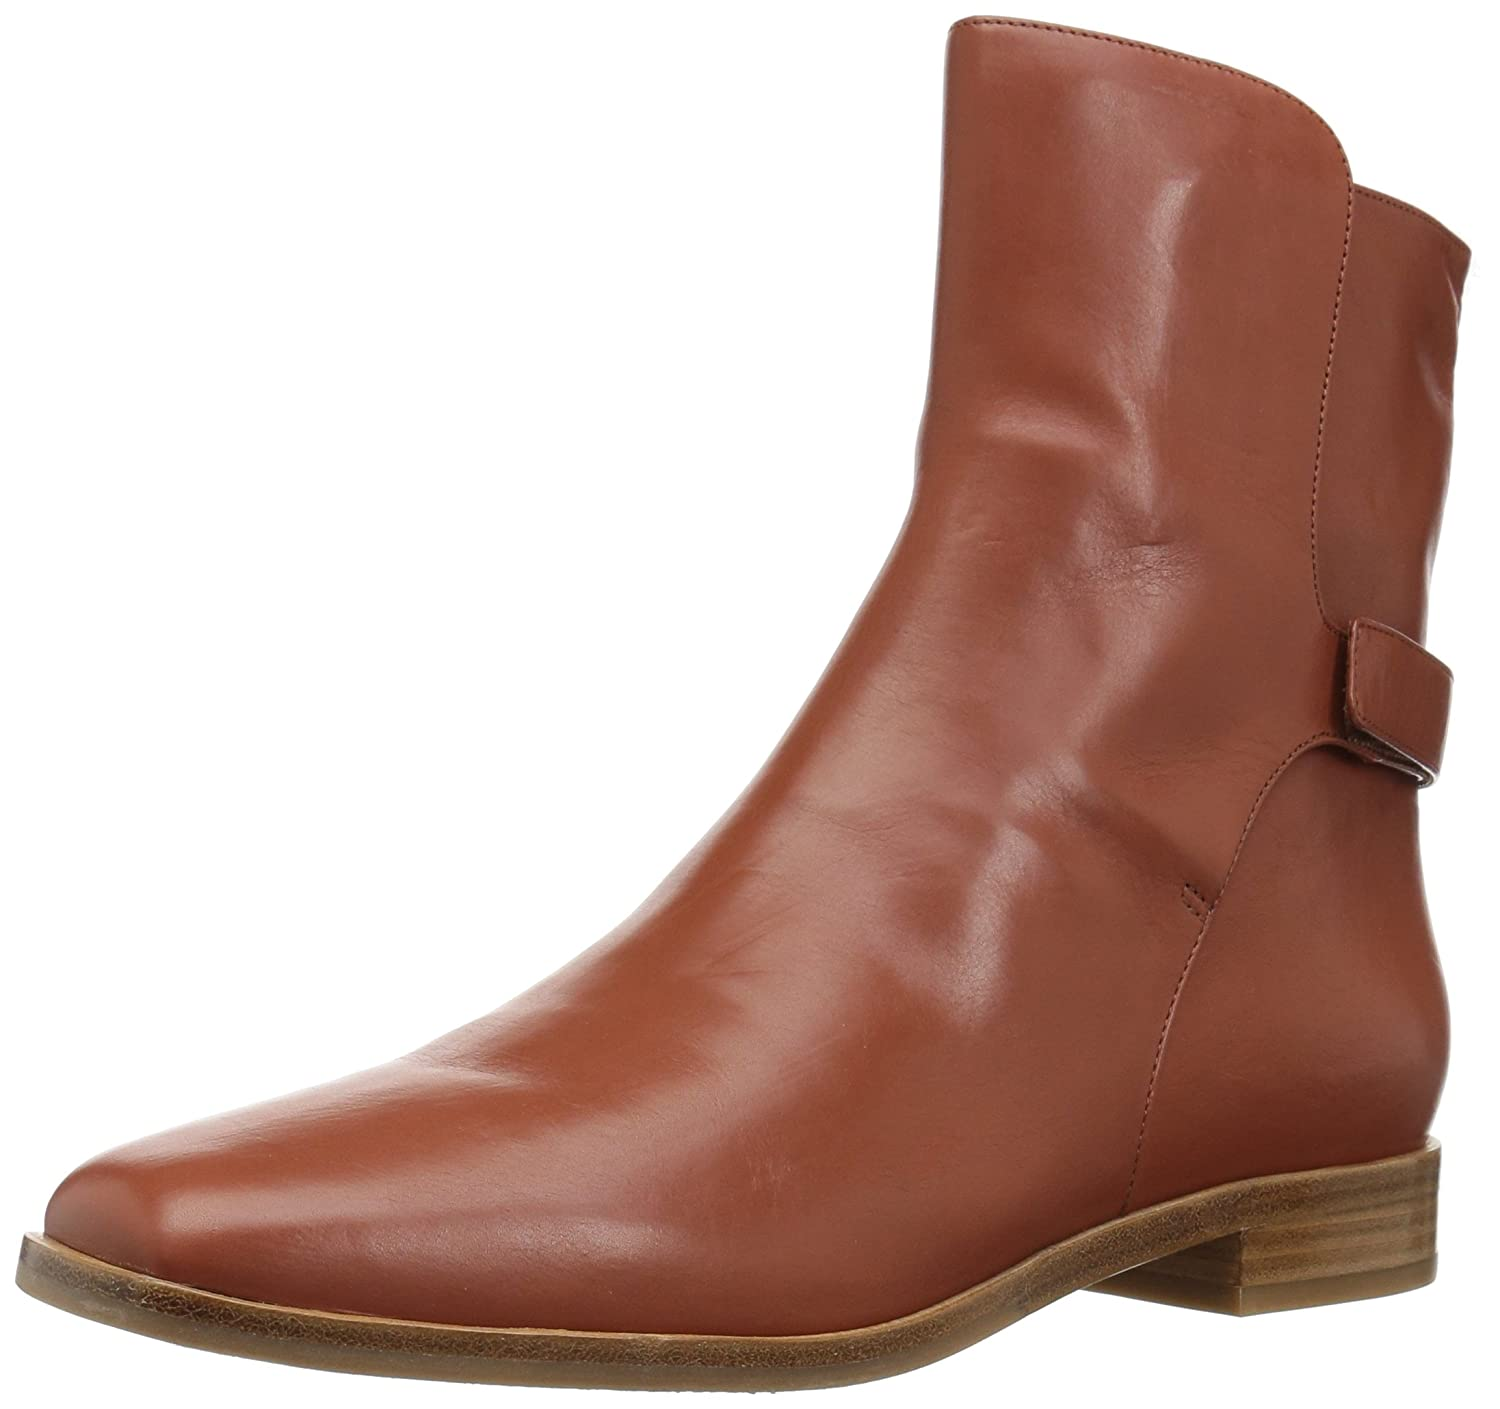 Via Spiga Women's Vaughan Ankle Boot B06XGSV8ZN 7.5 B(M) US|Chestnut Leather